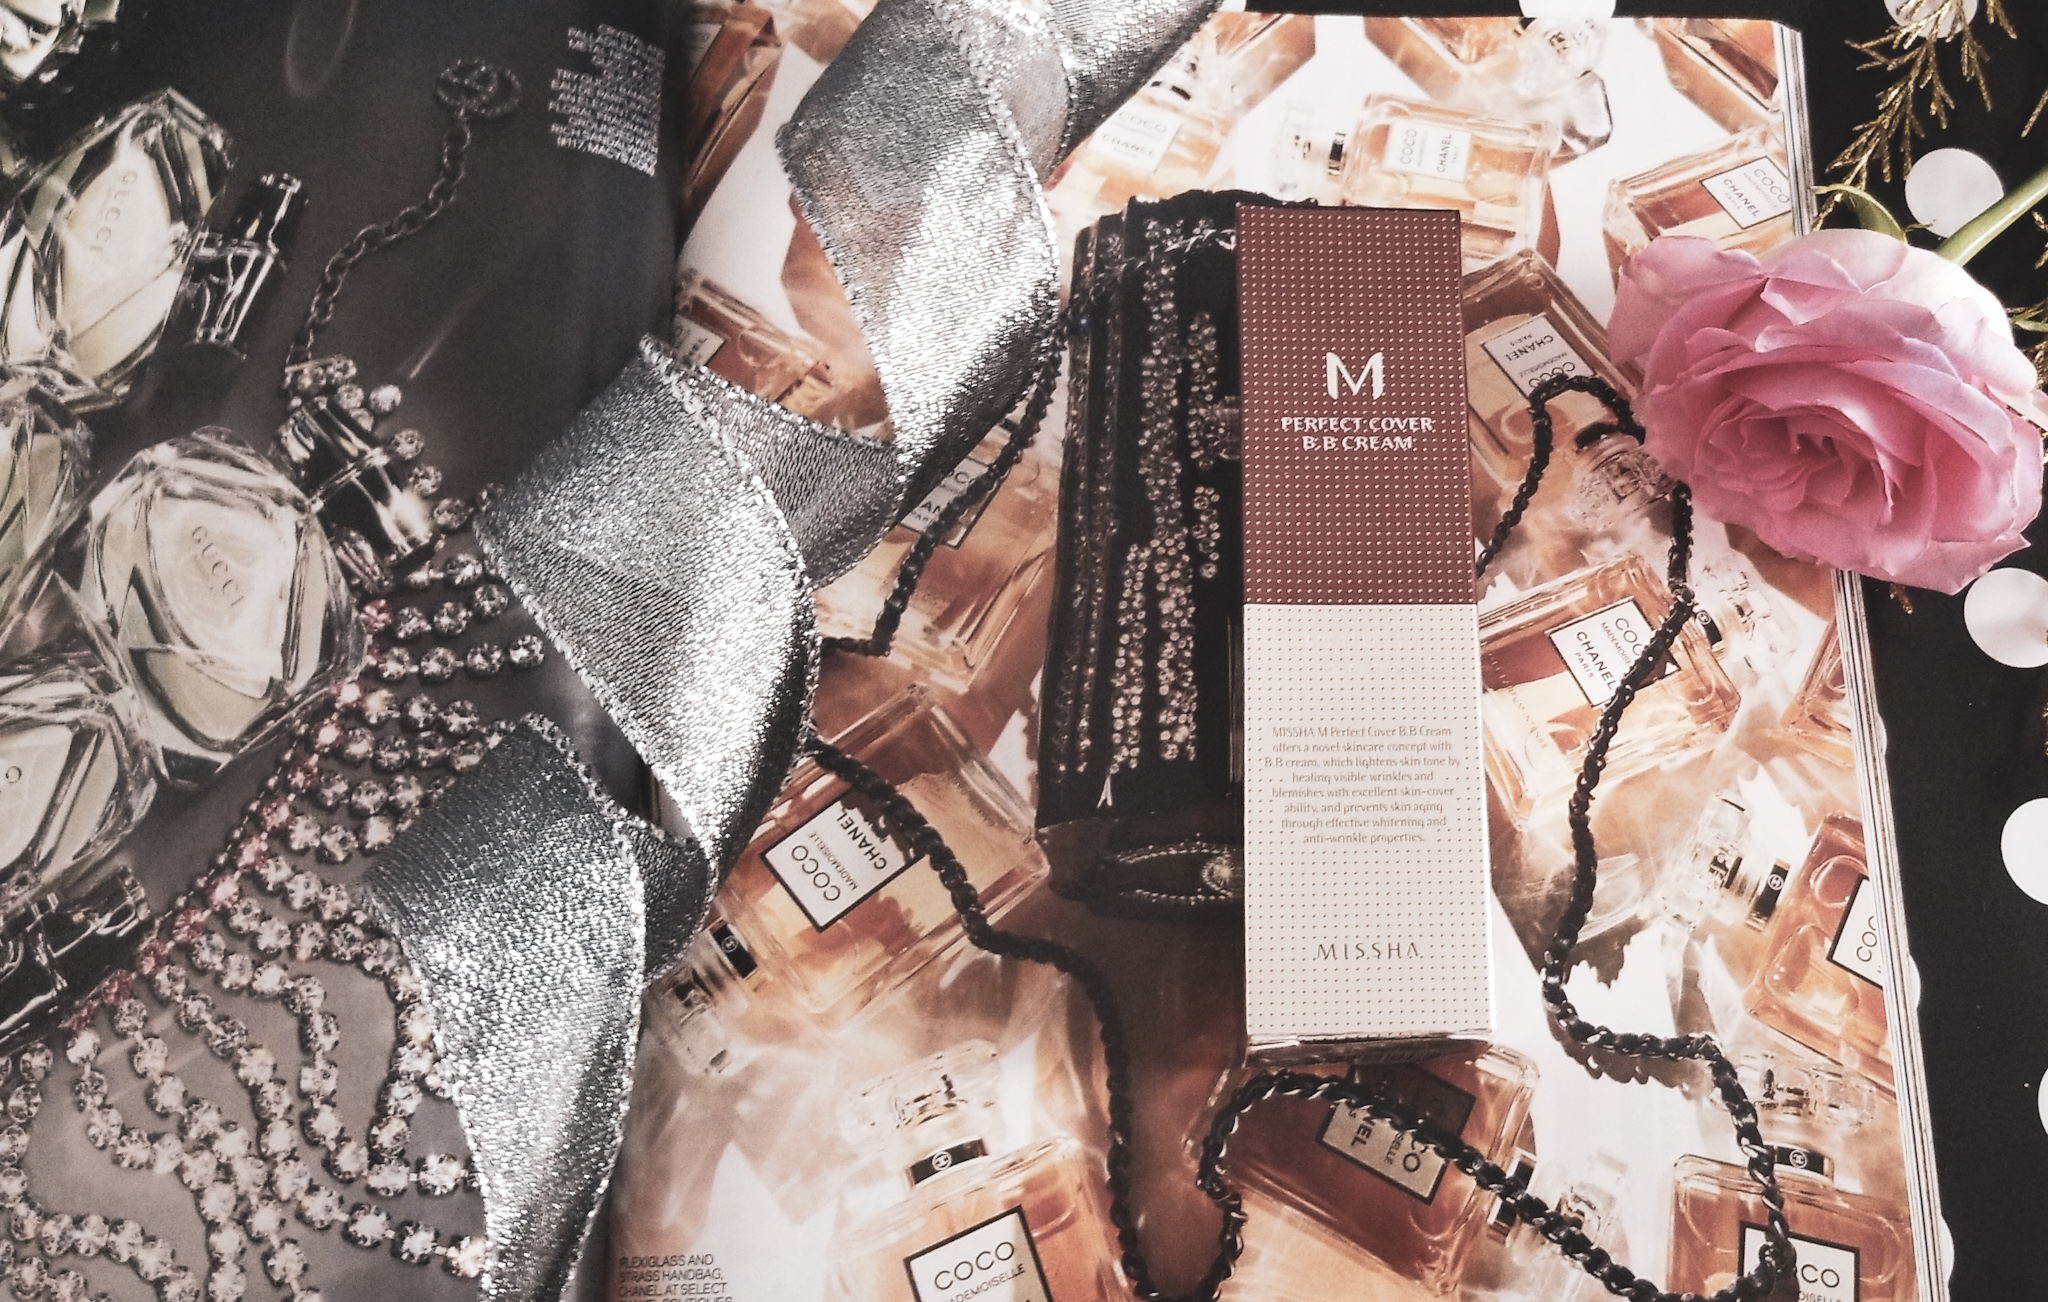 MISSHA BB CREAM: - I've been using Missha products for YEARS! I'm sad now that I've moved I don't have a Missha store 10 minutes away from me. I am a fan of their BB cream, it's not heavy and has buildable coverage + it has SPF. Full package product!